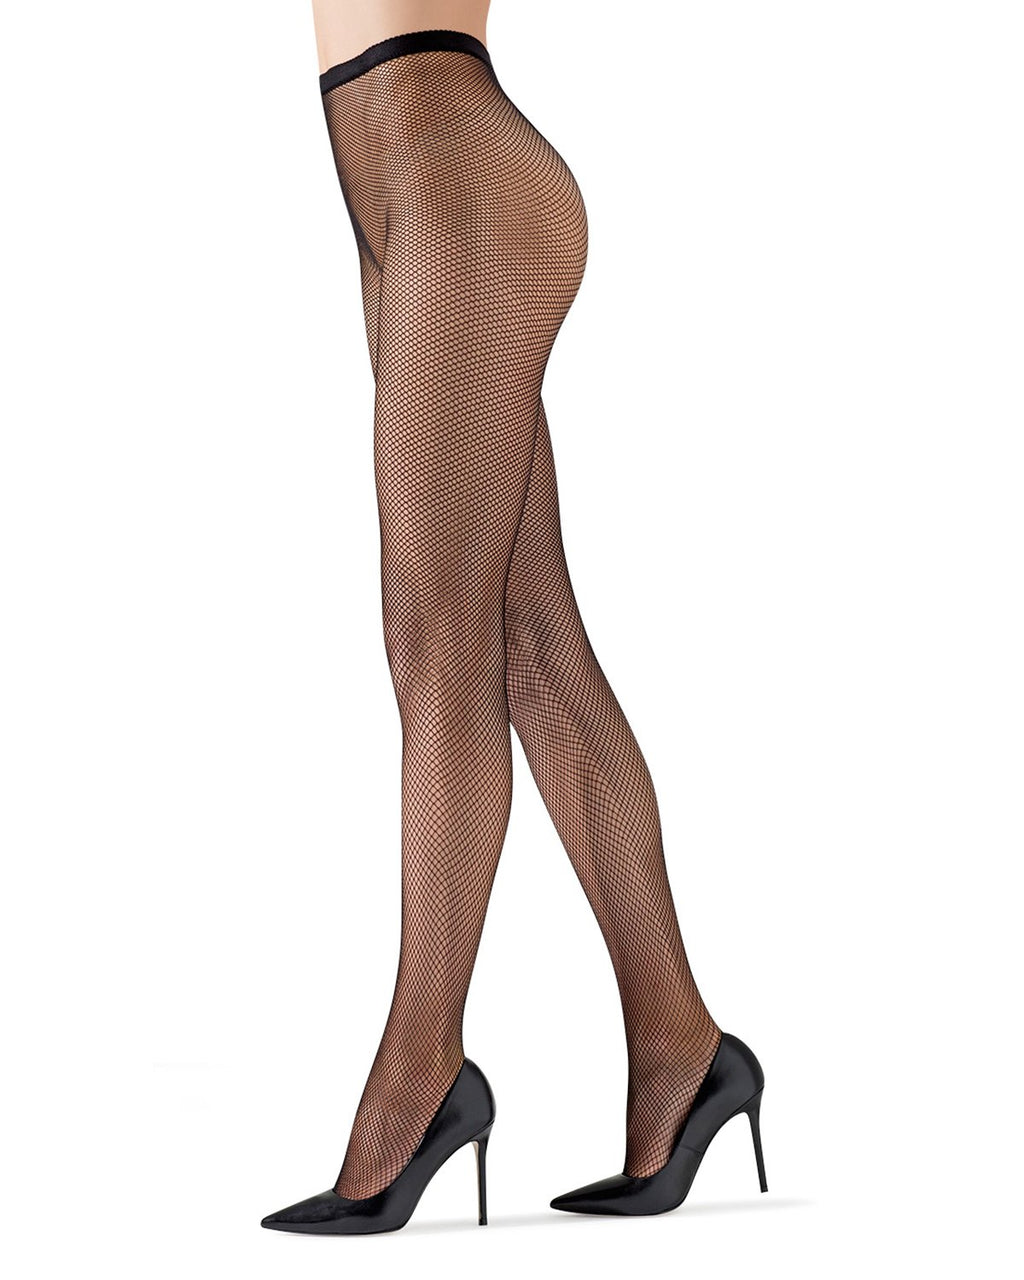 MeMoi | Basic Black Fishnets Tights | Women's Tights